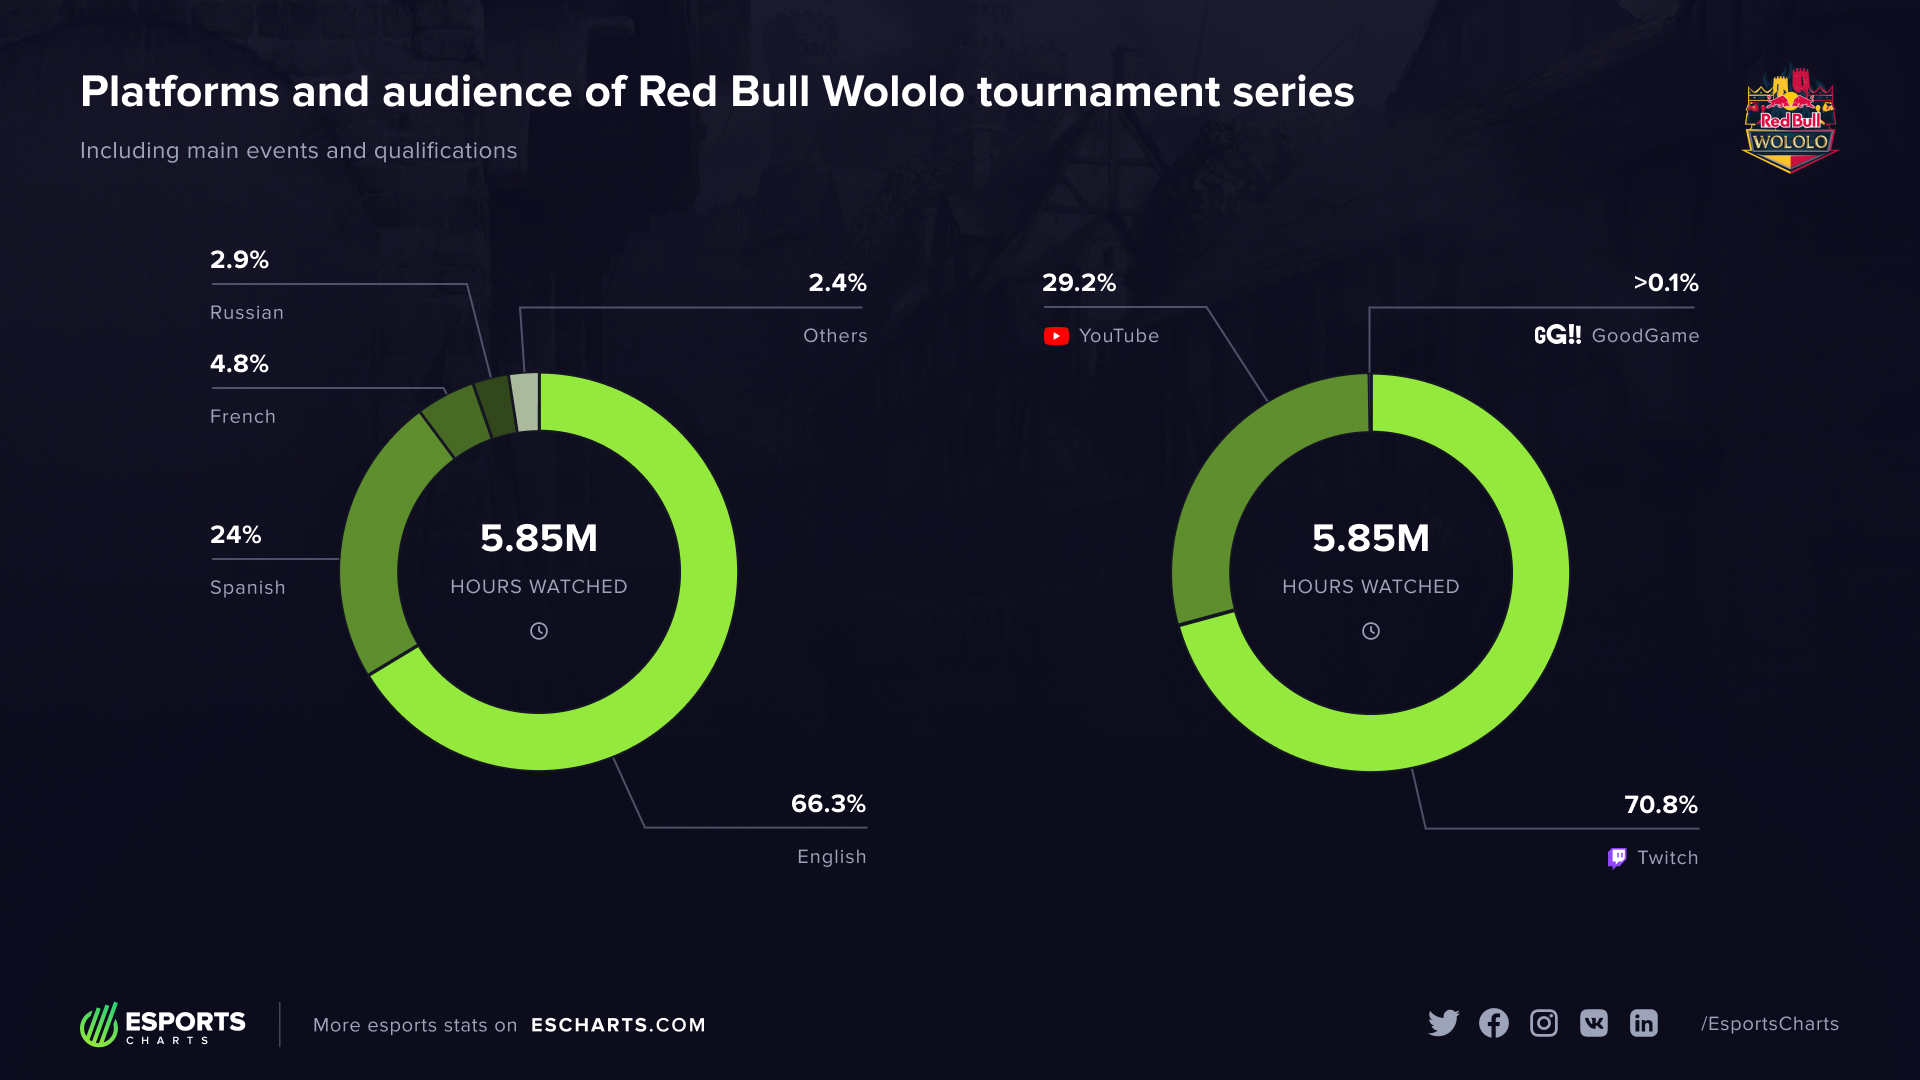 Who watched Red Bull Wololo events and where?